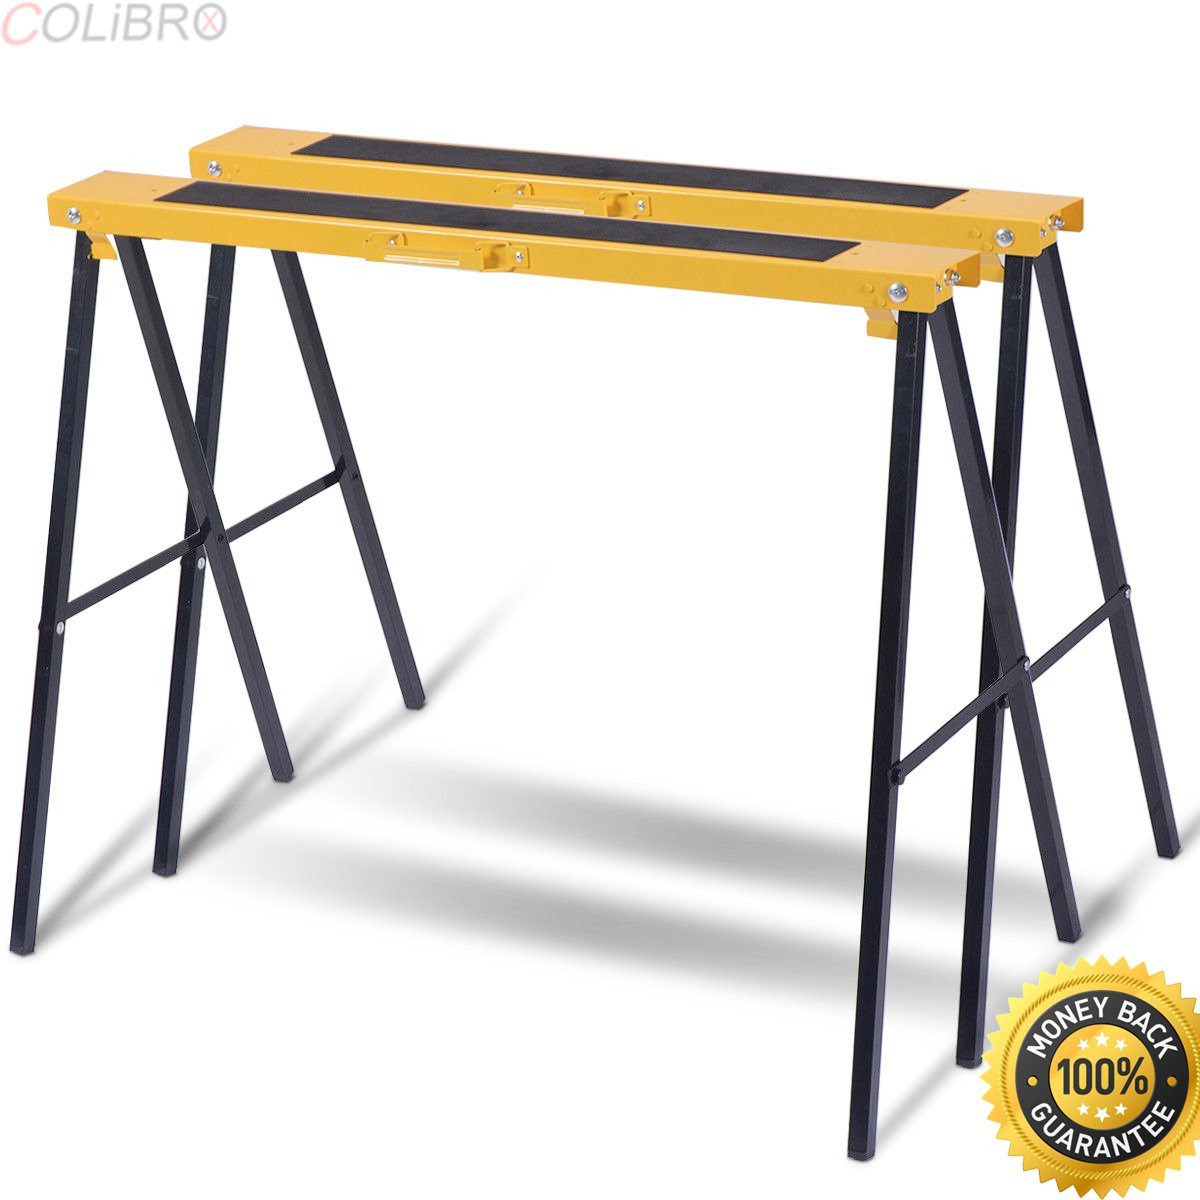 COLIBROX--New 2 Pack Heavy Duty Saw Horse Steel Folding Legs Portable Sawhorse Pair. kobalt 42 in steel adjustable saw horse. best sawhorse system with clamp amazon. sawhorses harbor freight.